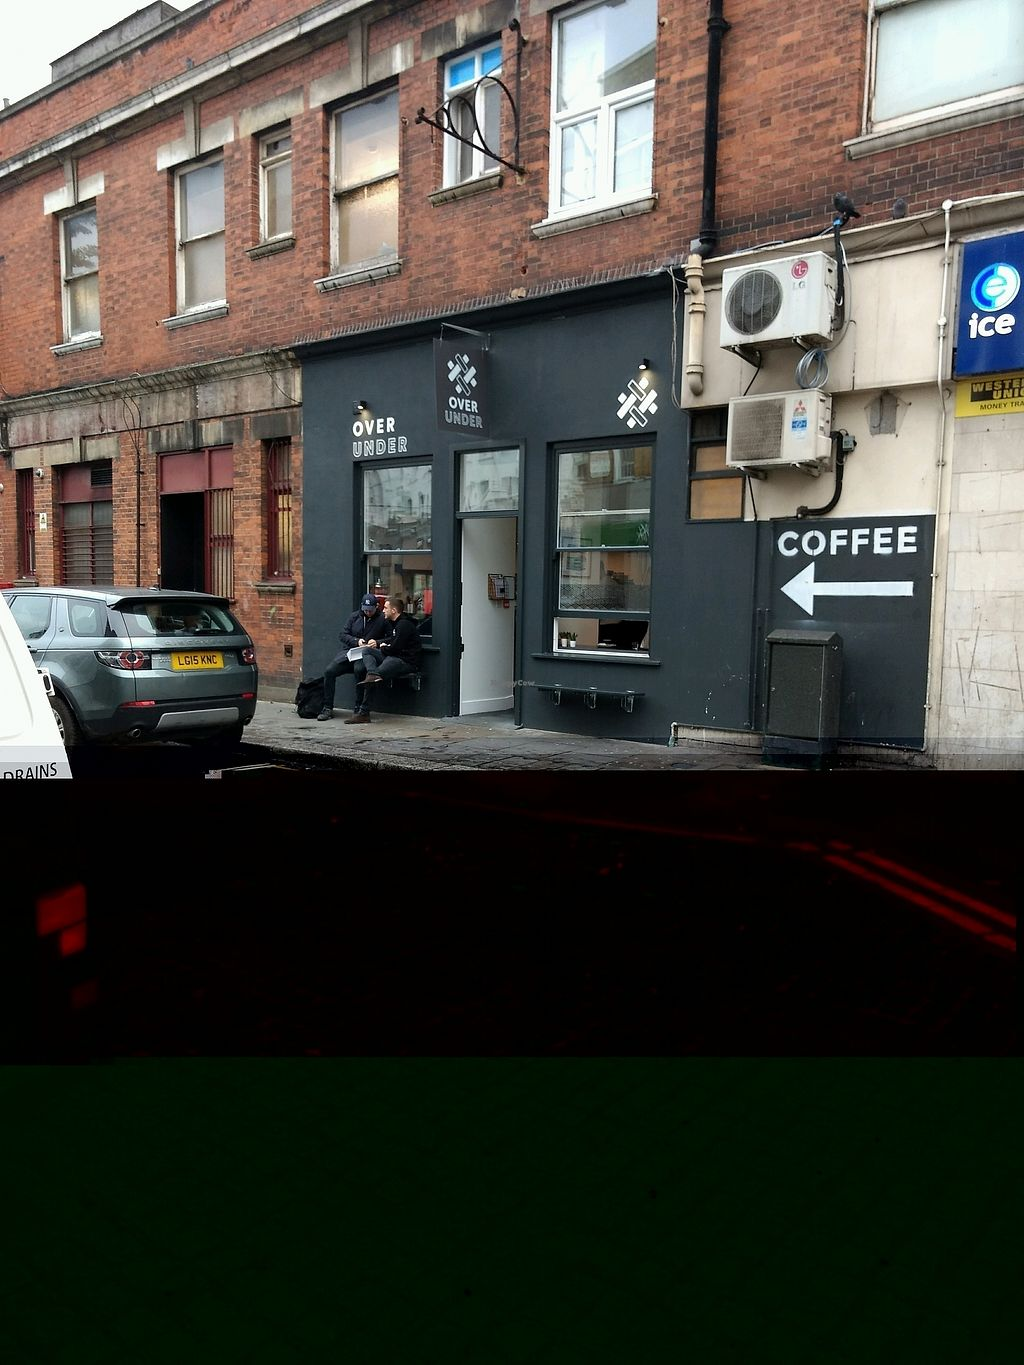 """Photo of Over Under Coffee  by <a href=""""/members/profile/craigmc"""">craigmc</a> <br/>outside <br/> October 20, 2017  - <a href='/contact/abuse/image/95844/316864'>Report</a>"""